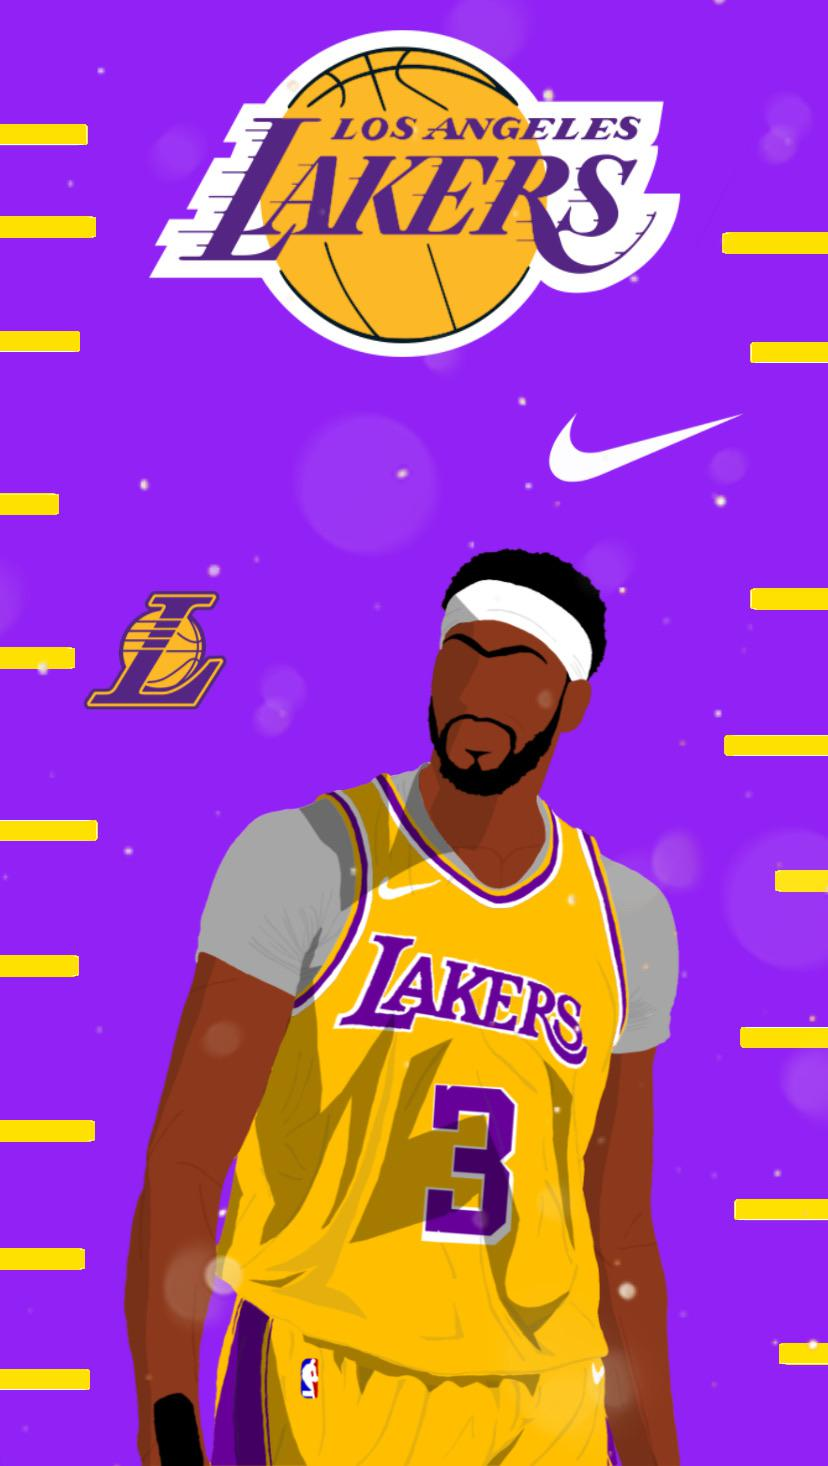 Anthony Davis Lakers Wallpaper : anthony, davis, lakers, wallpaper, Anthony, Davis, Lakers, Wallpapers, Backgrounds, WallpaperAccess